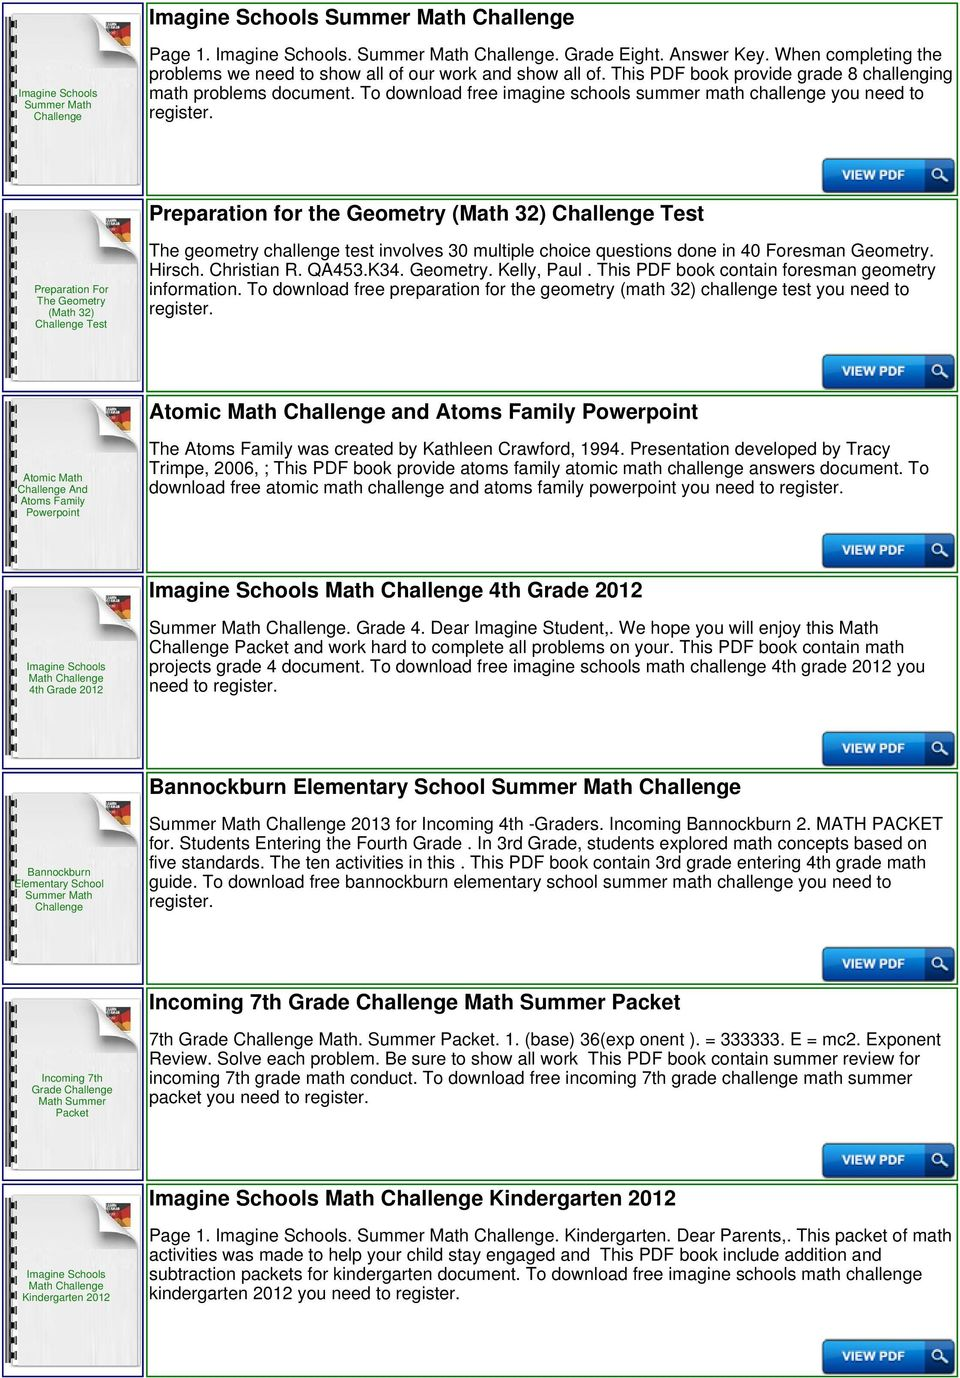 To download free imagine schools summer math challenge you need to Preparation for the Geometry (Math 32) Test Preparation For The Geometry (Math 32) Test The geometry challenge test involves 30